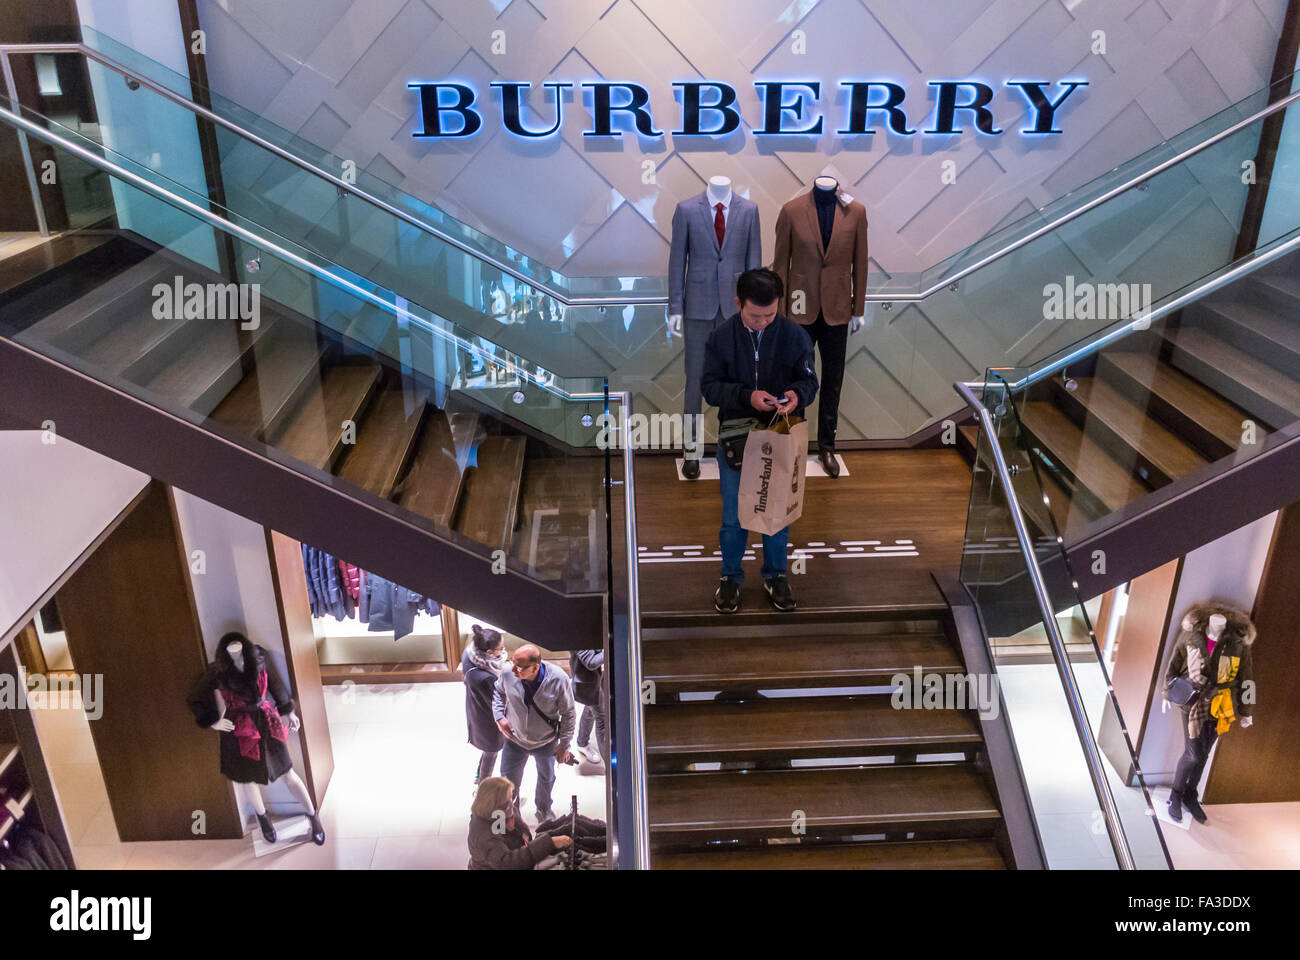 paris france people shopping in burberry store sign in. Black Bedroom Furniture Sets. Home Design Ideas